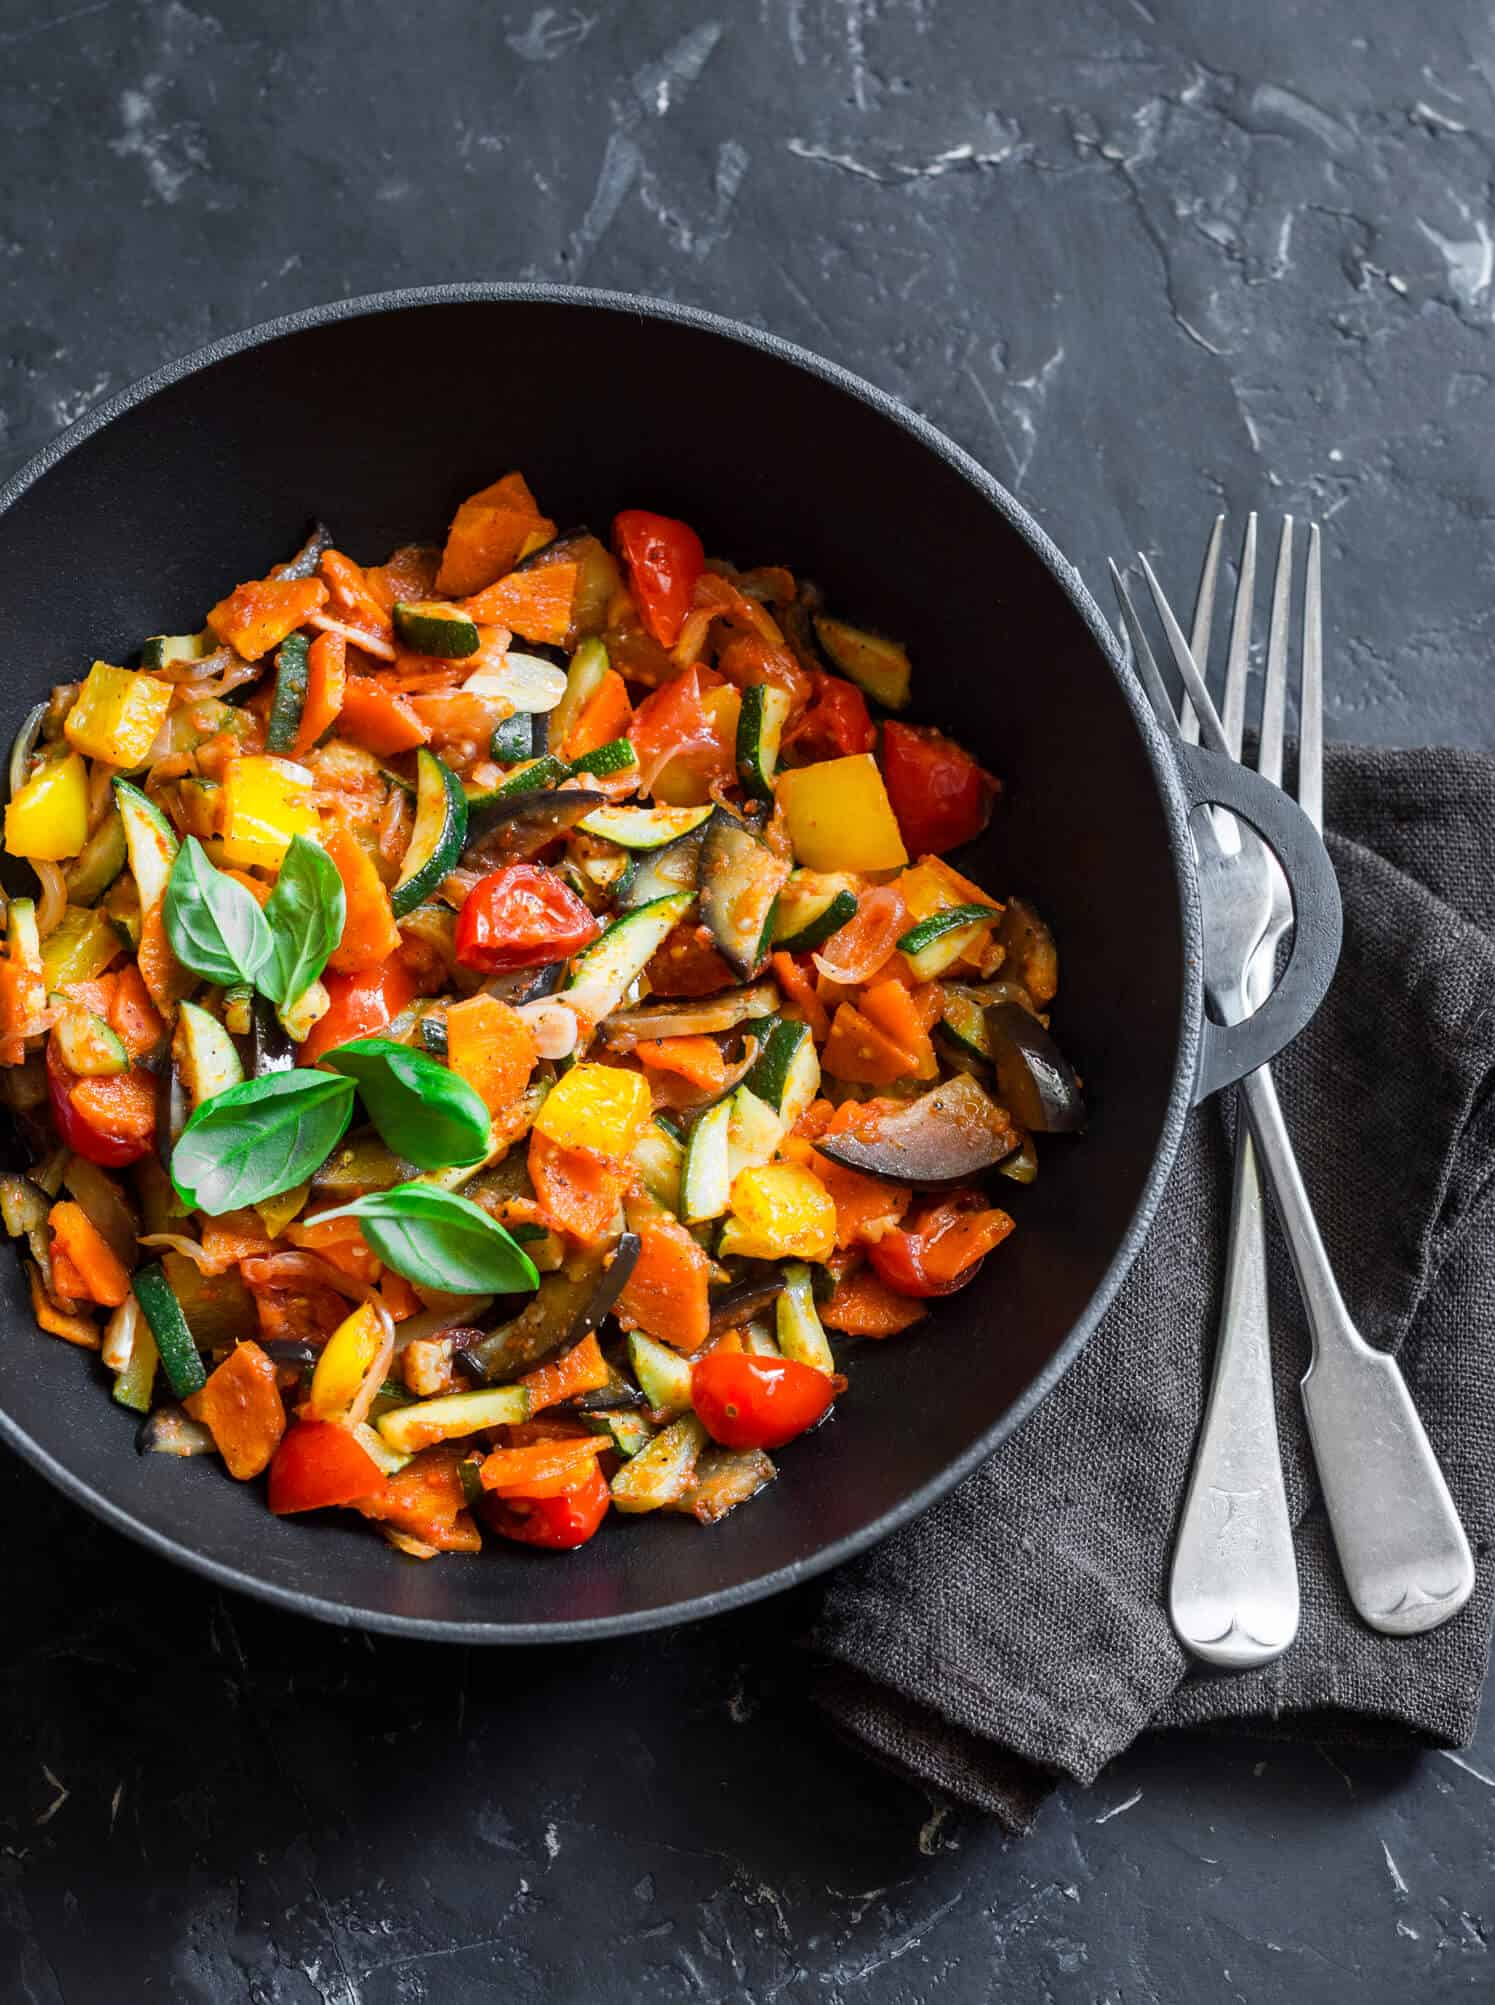 Spicy Vegetable Skillet